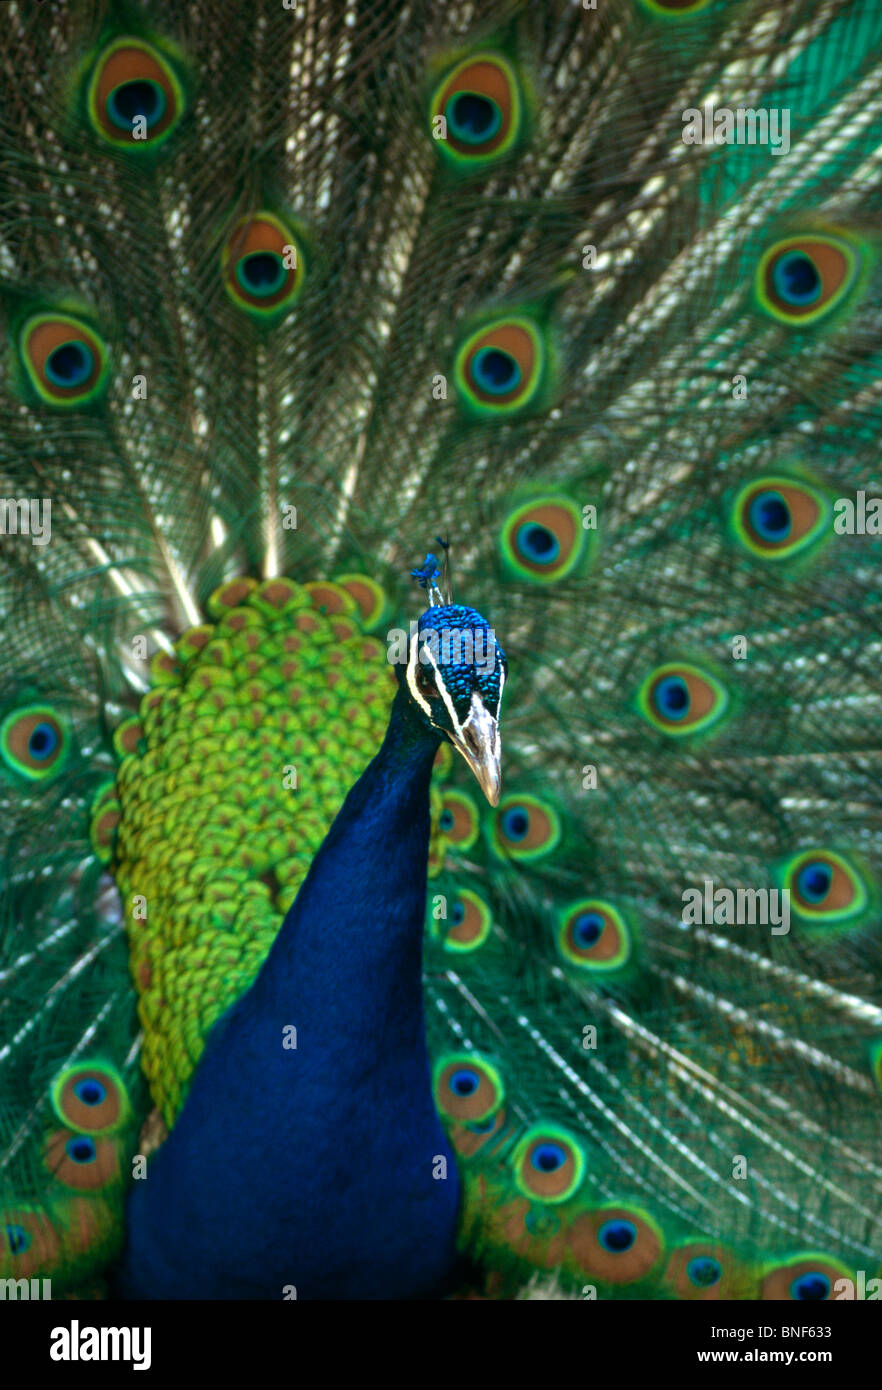 Portrait of a Peacock displaying his tail feathers, Pietermaritzburg, KwaZulu-Natal Province, South Africa - Stock Image